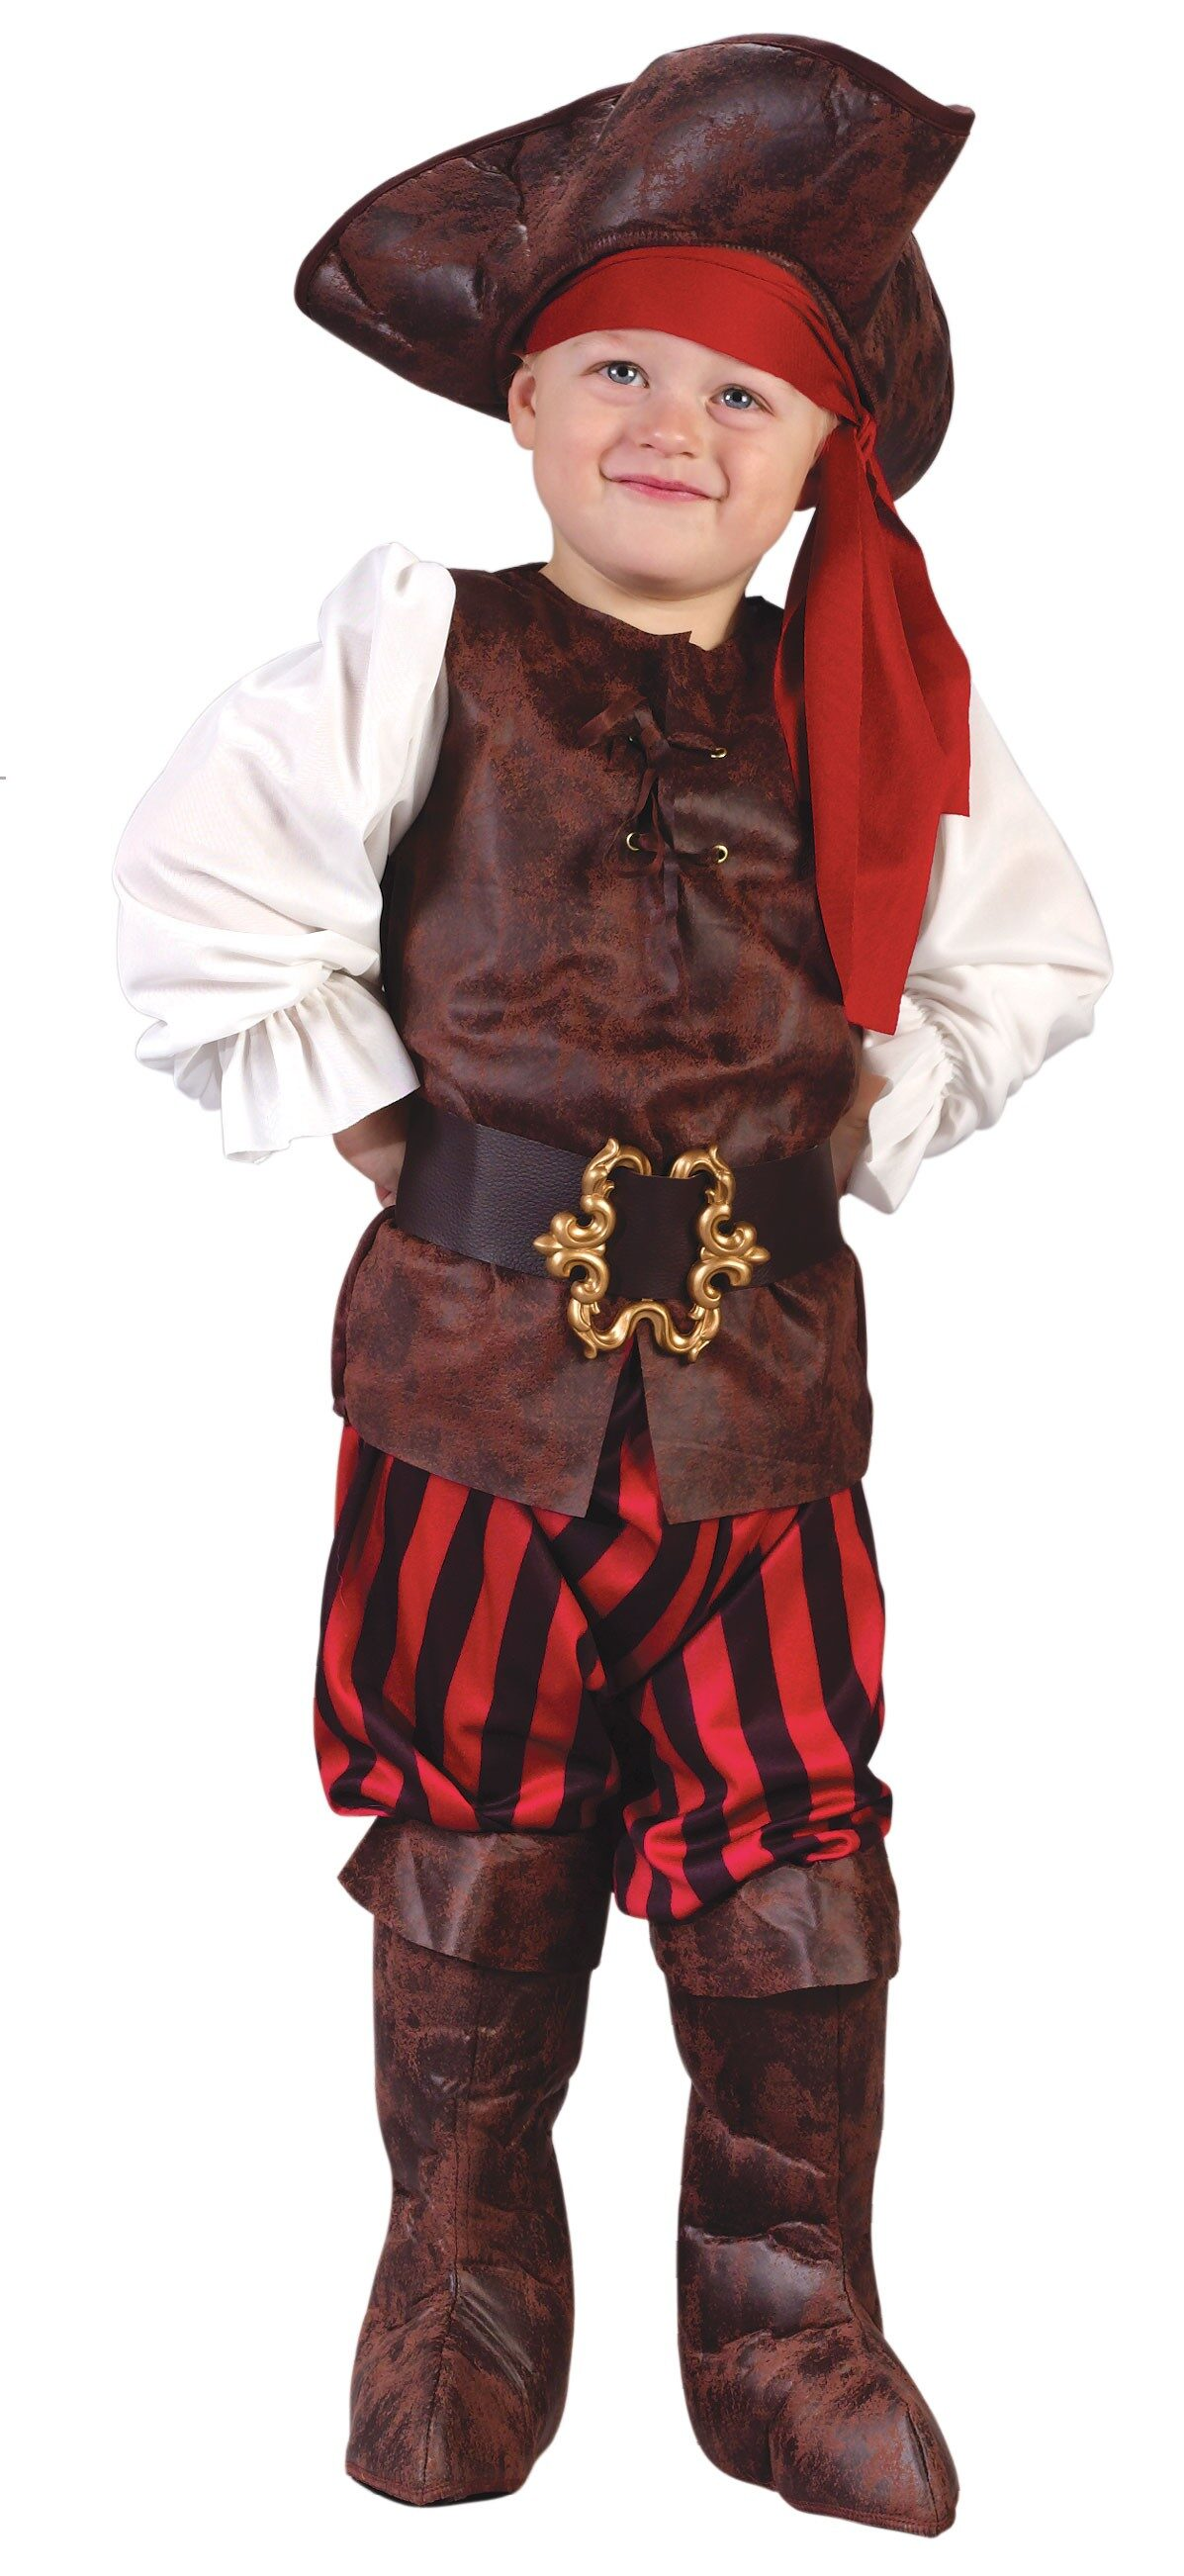 sc 1 st  Mr. Costumes & Kids Rustic Buccaneer Toddler Pirate Costume - Mr. Costumes